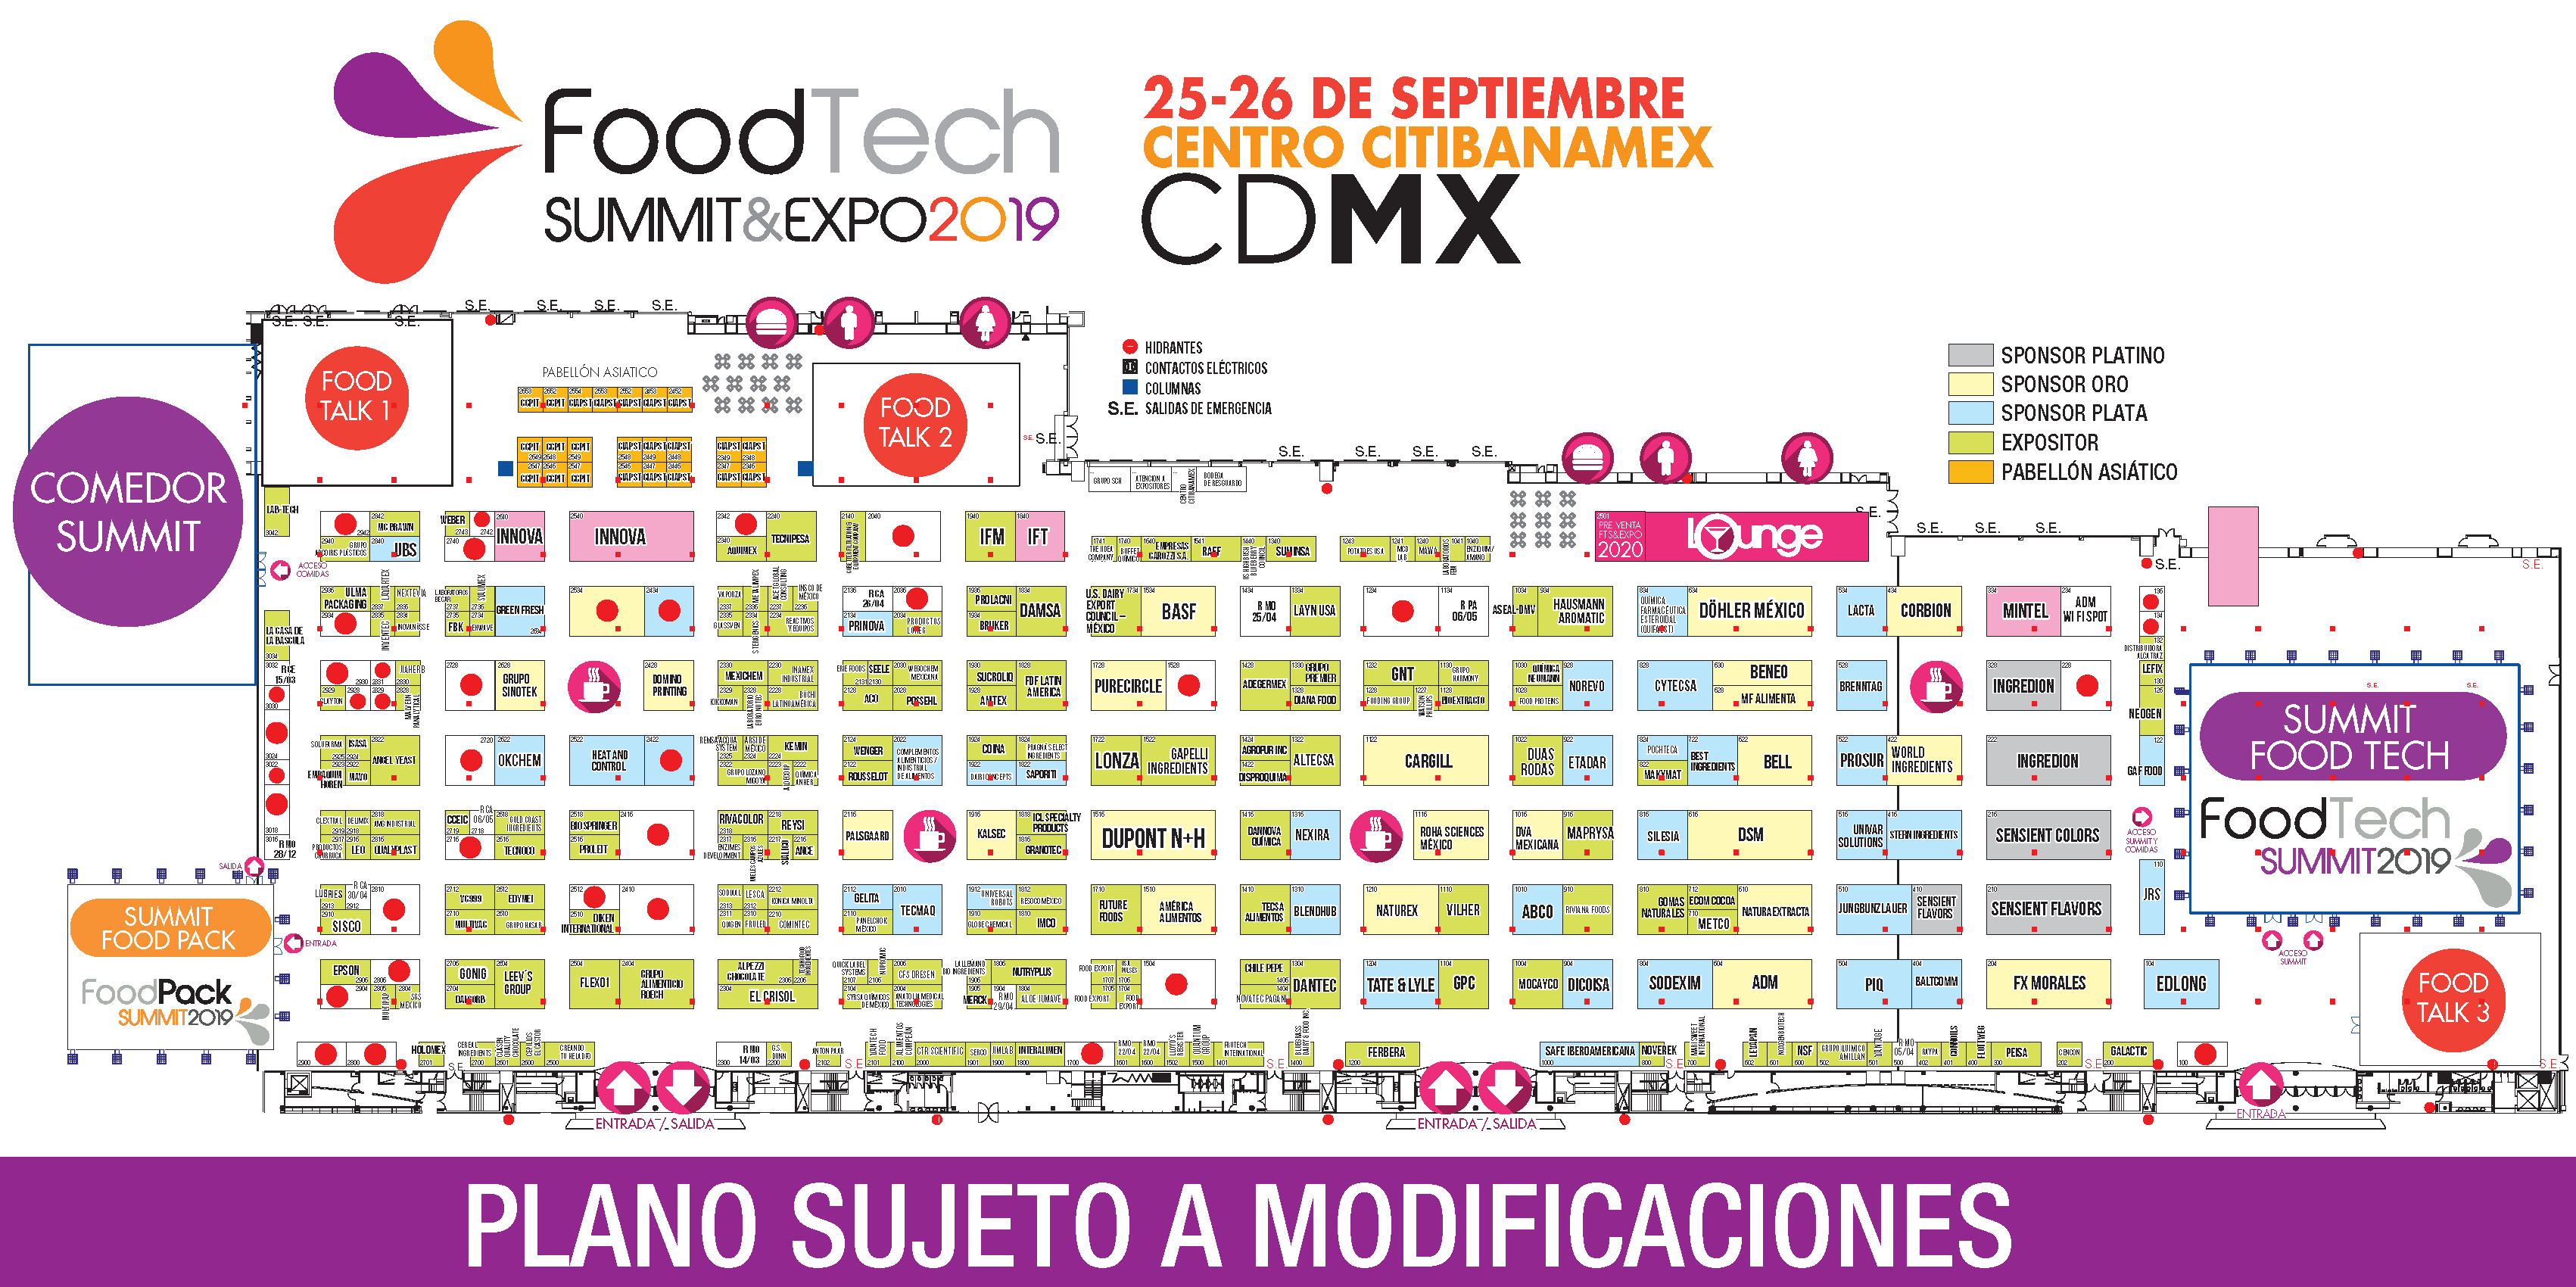 Food Show PLUS! at Food Tech Summit & Expo 2019